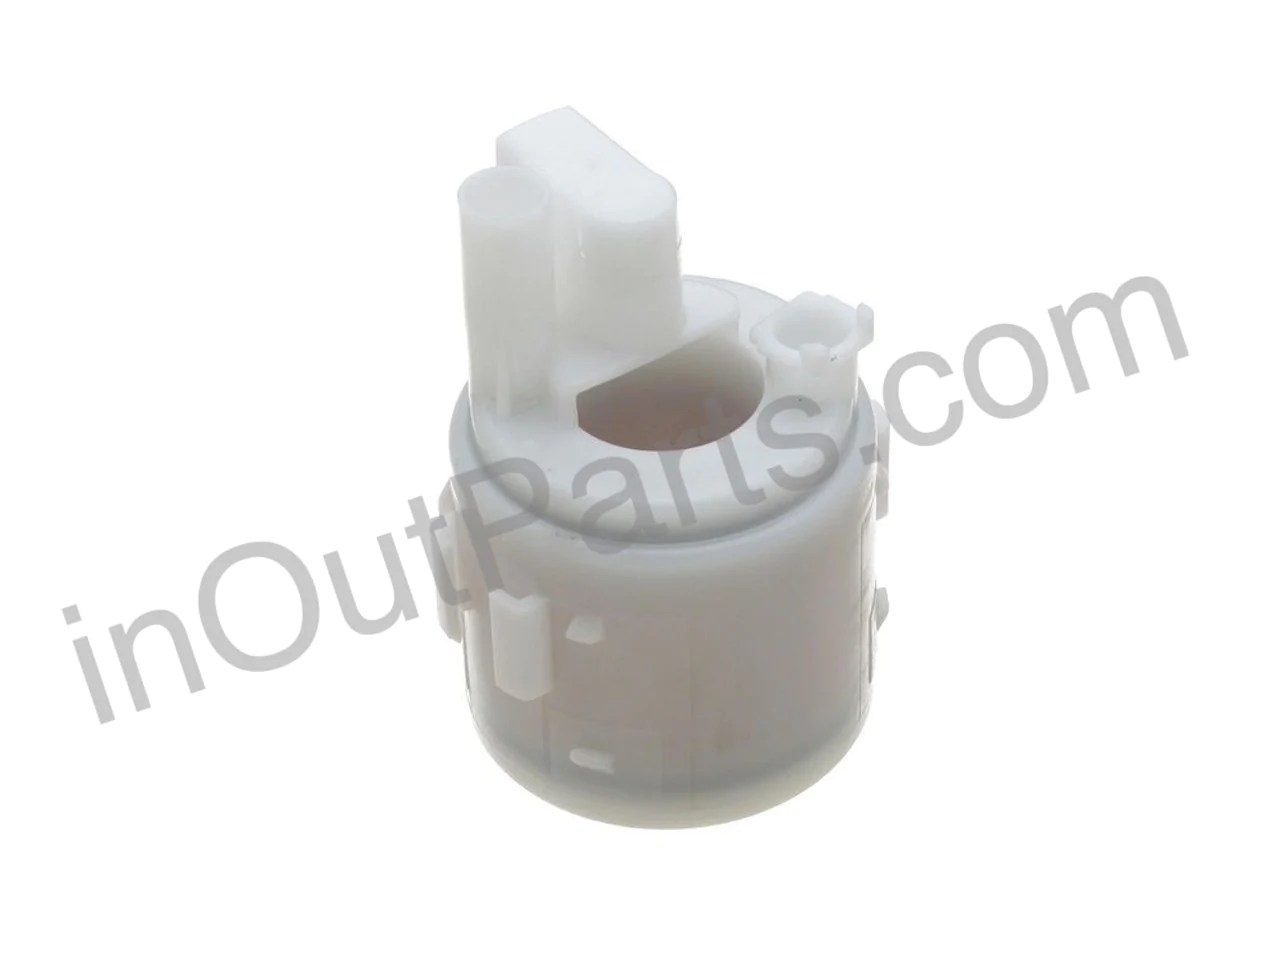 medium resolution of fuel filter fits nissan x trail 2000 2001 2002 2003 2004 2005 2006 2 inout parts